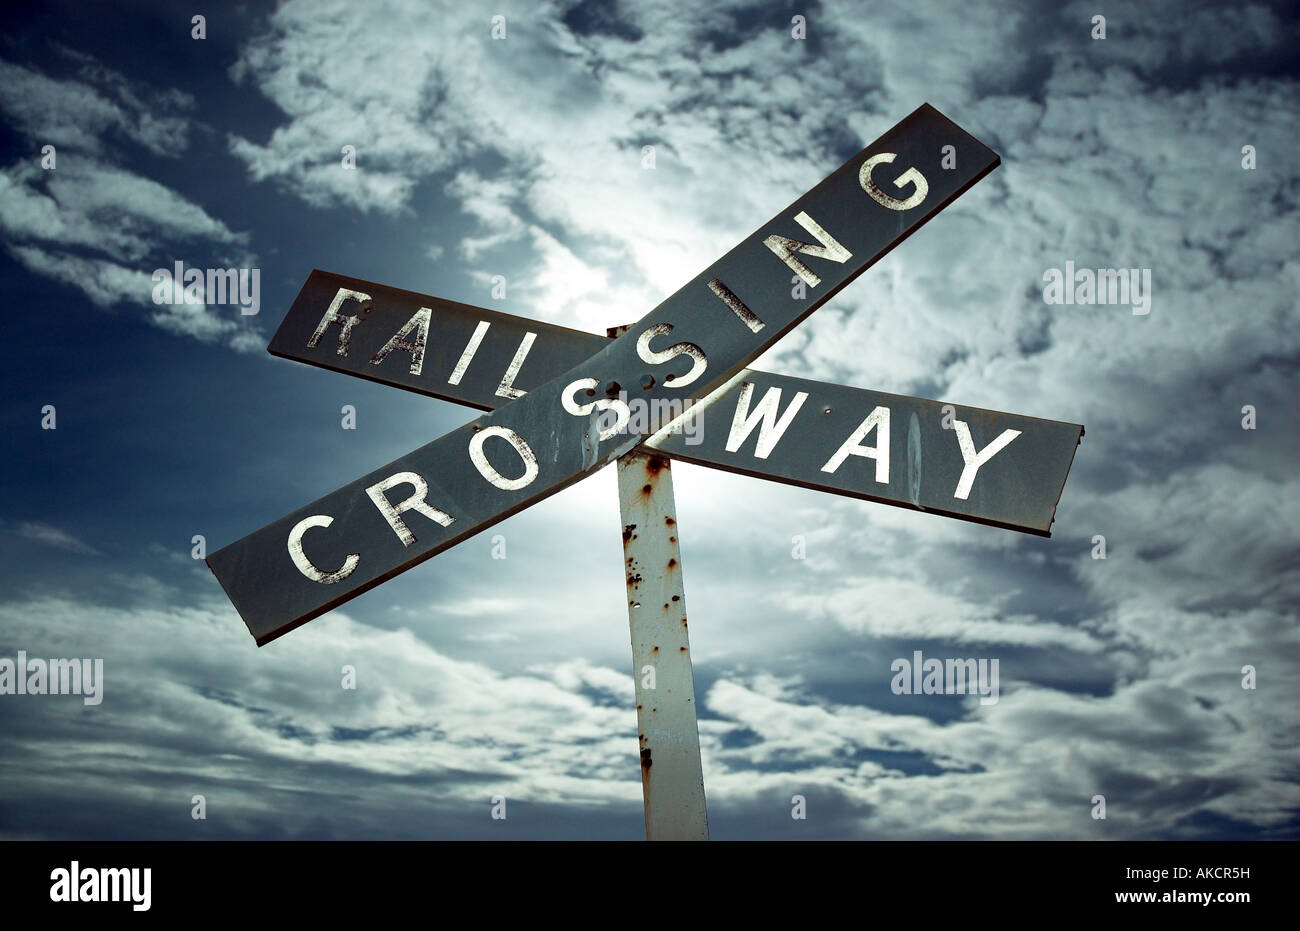 A dilapidated railway crossing sign, 150 km north of Adelaide, South Australia - Stock Image